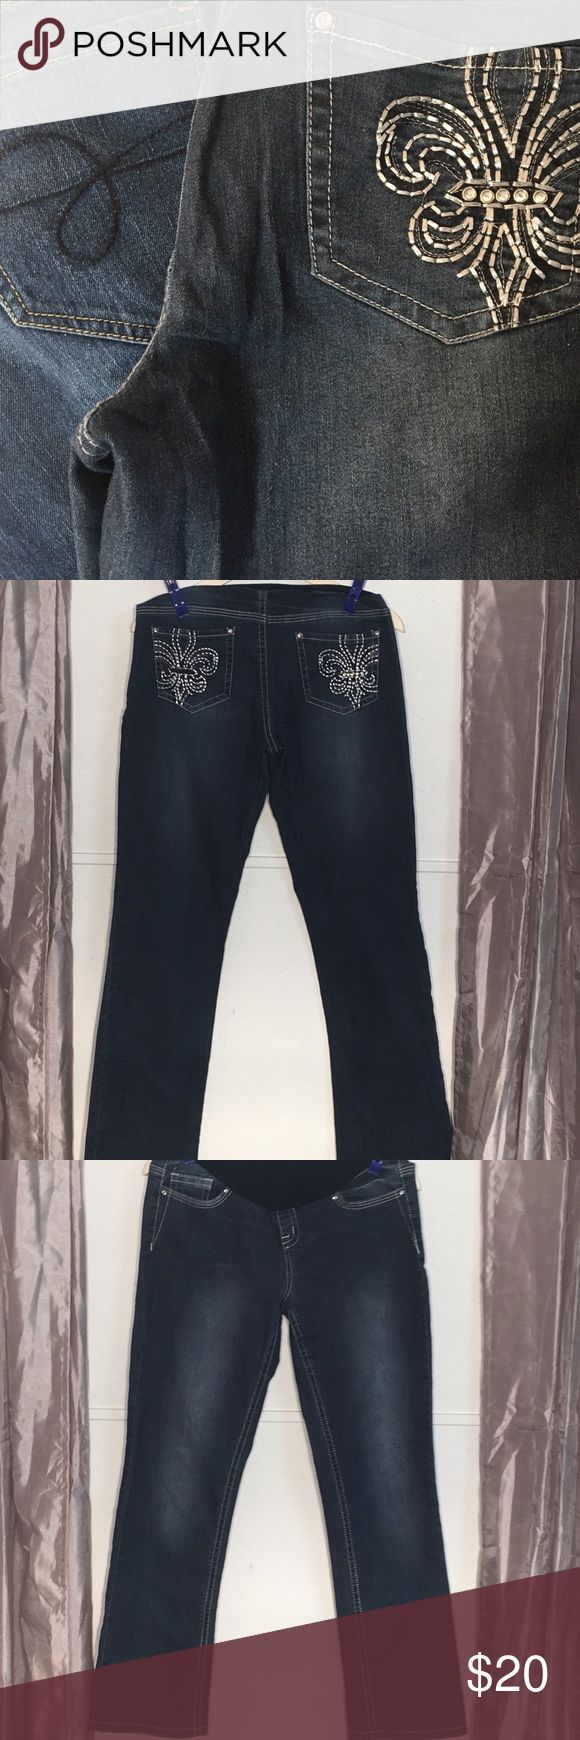 Maternity jean bundle of 2. Size medium 2 pair maternity jeans. Planet motherhood, Indigo blue. Both size medium GUC  All blue jeans are buy one get one of equal or lesser value 1/2 off! Jeans